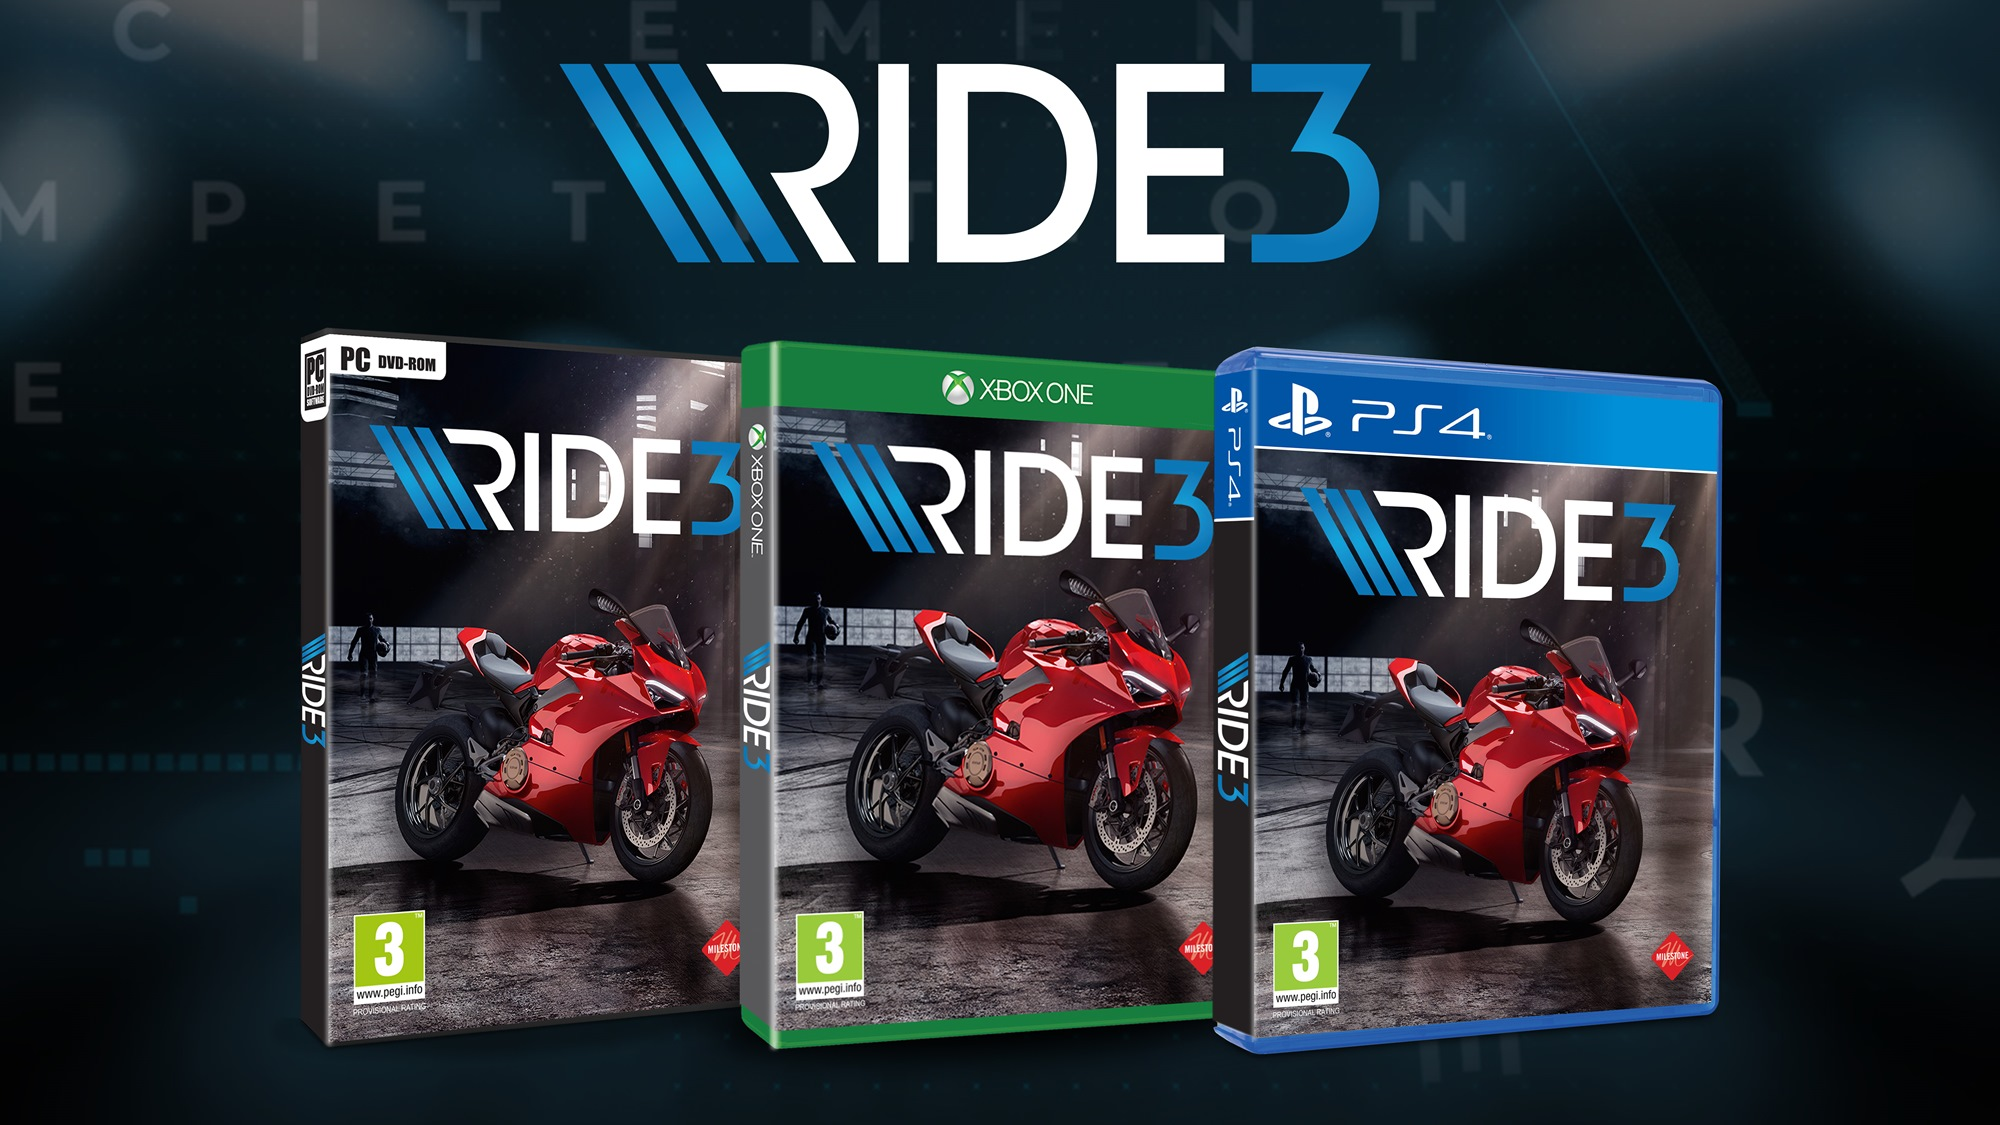 Panigale V4 featured in the RIDE 3 video game